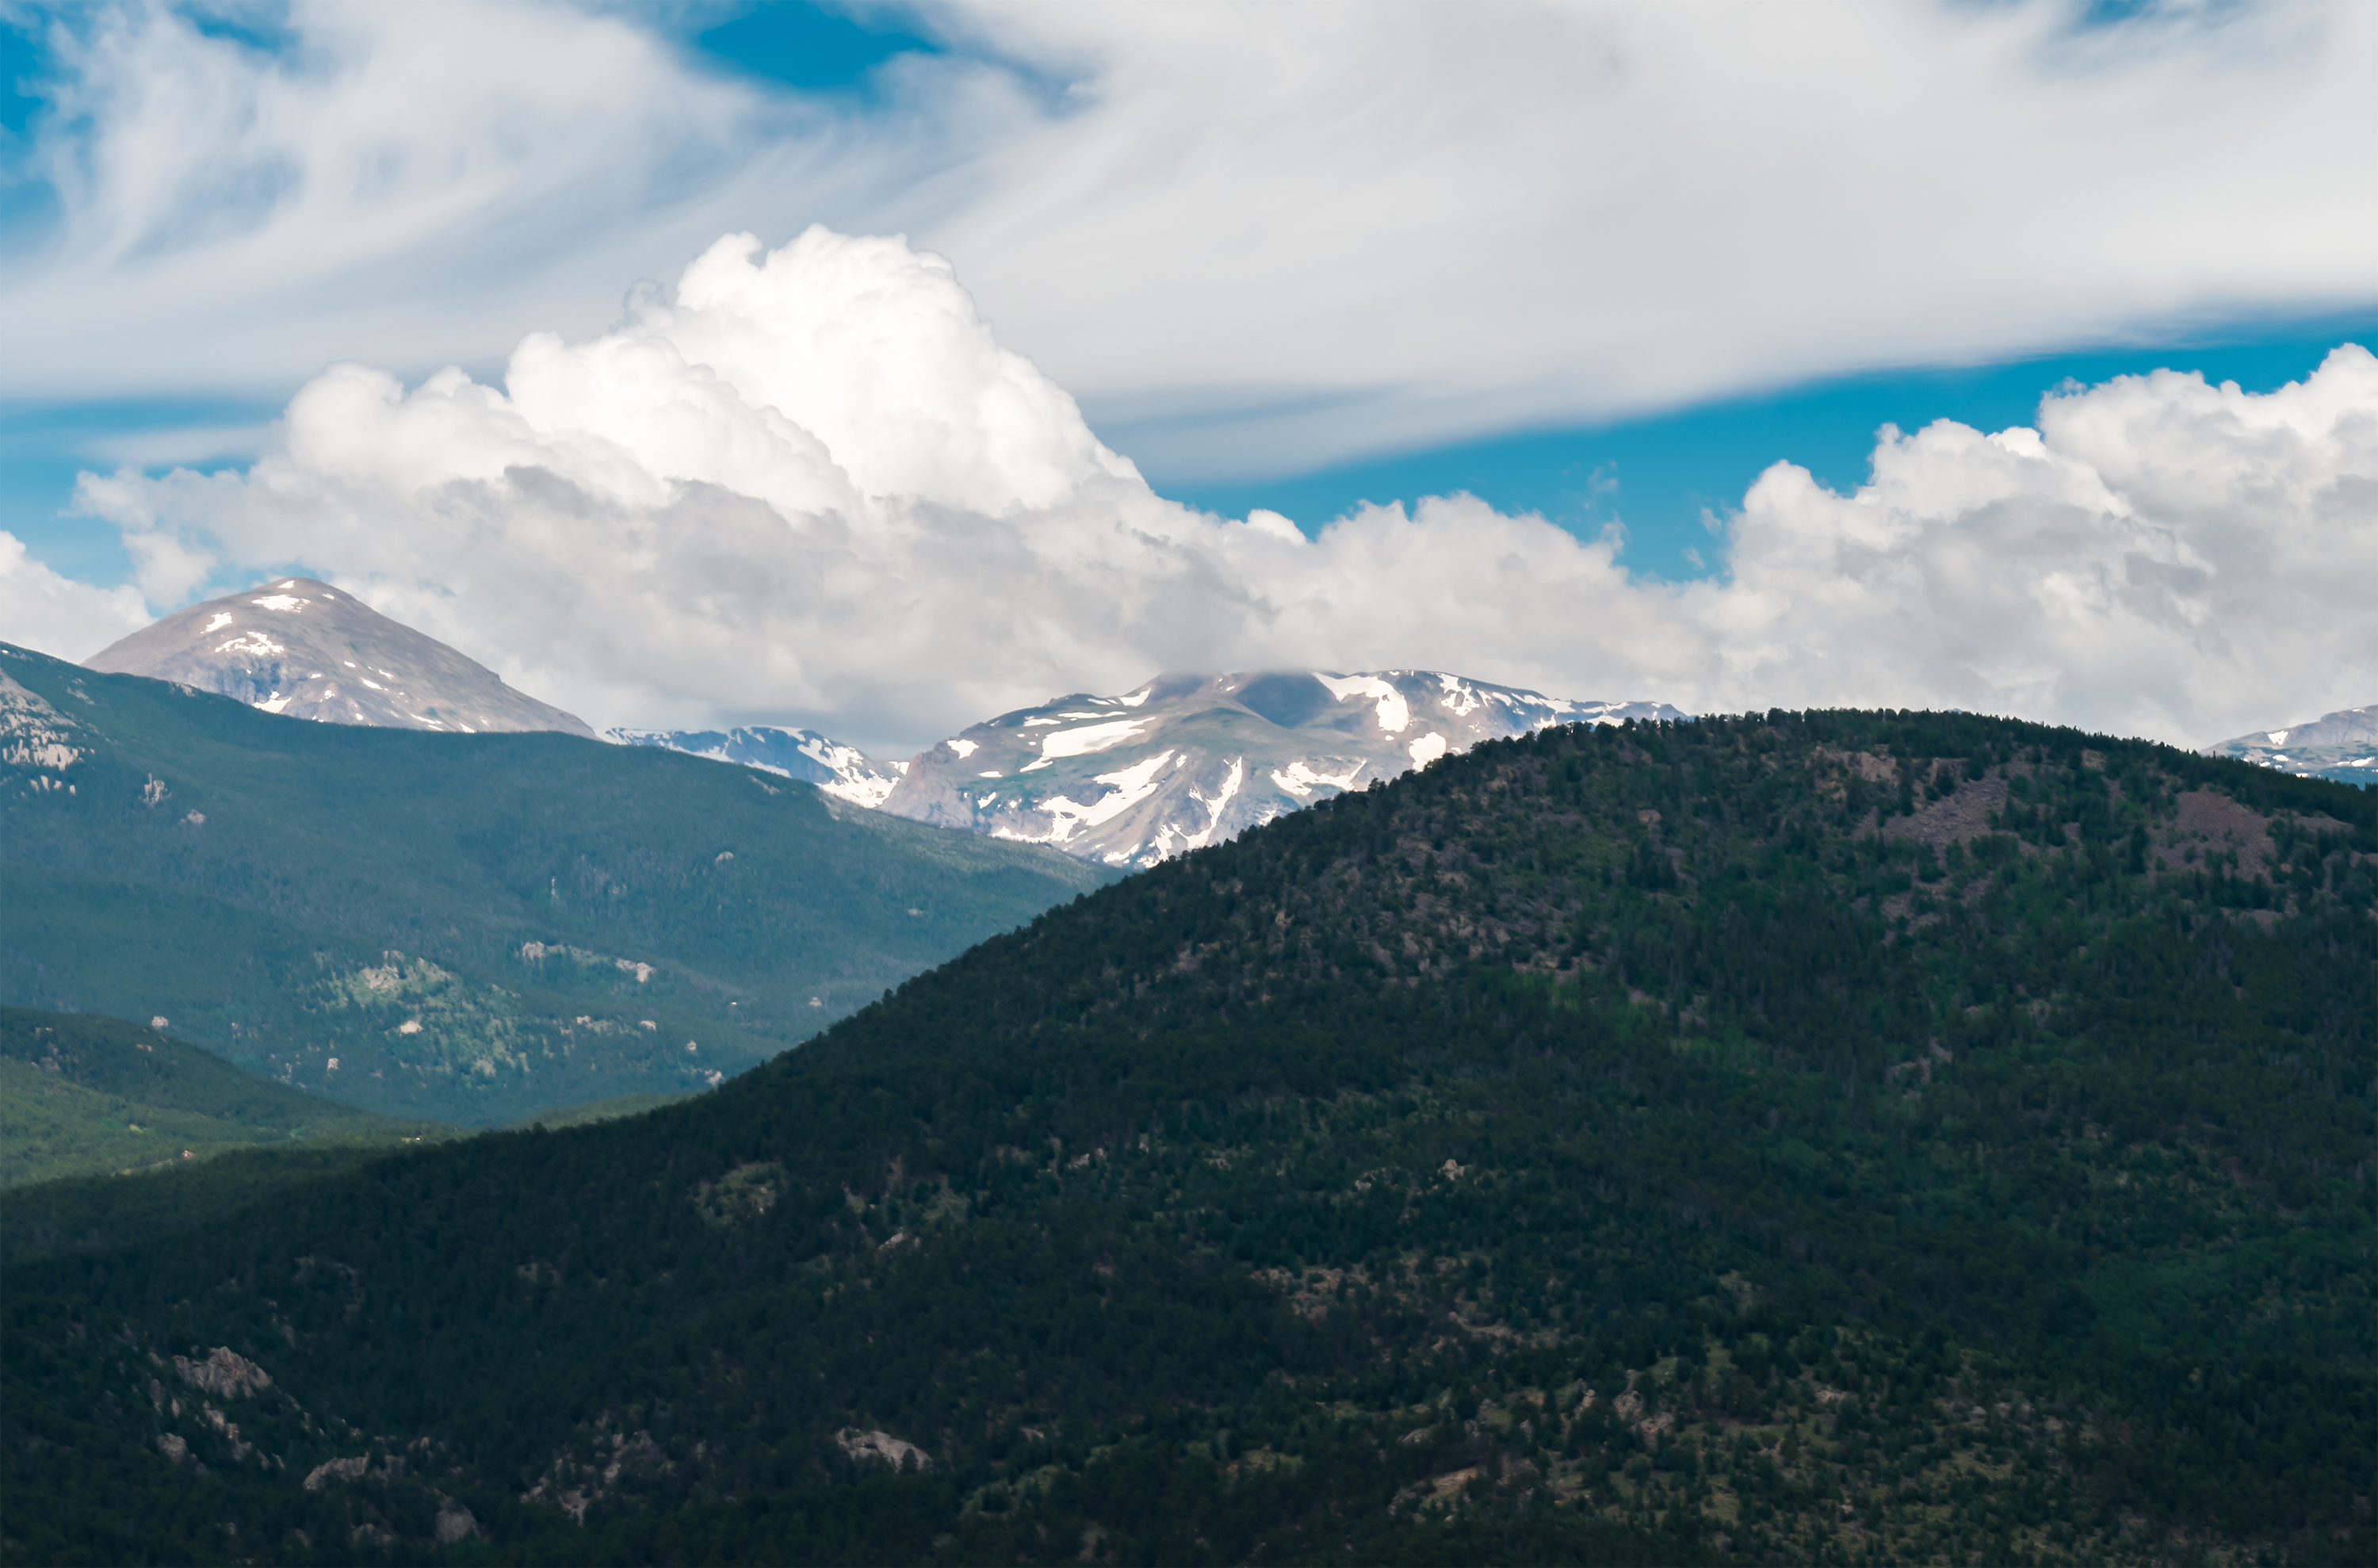 Mountain HDR 4 by Chillstice